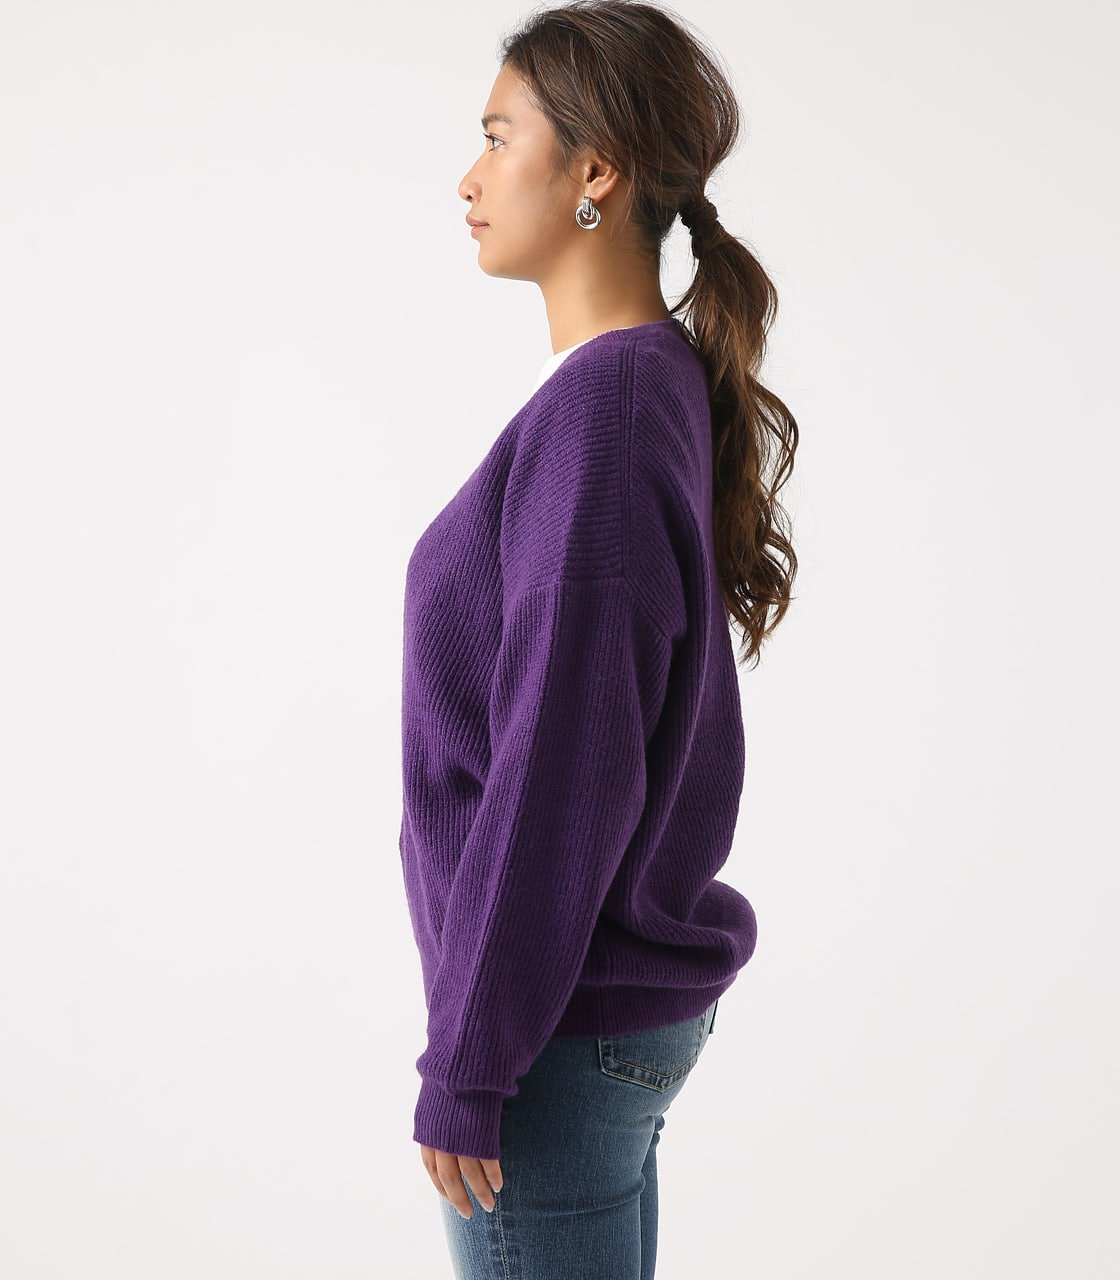 【AZUL BY MOUSSY】V NECK LOOSE KNIT TOPS 詳細画像 PUR 6